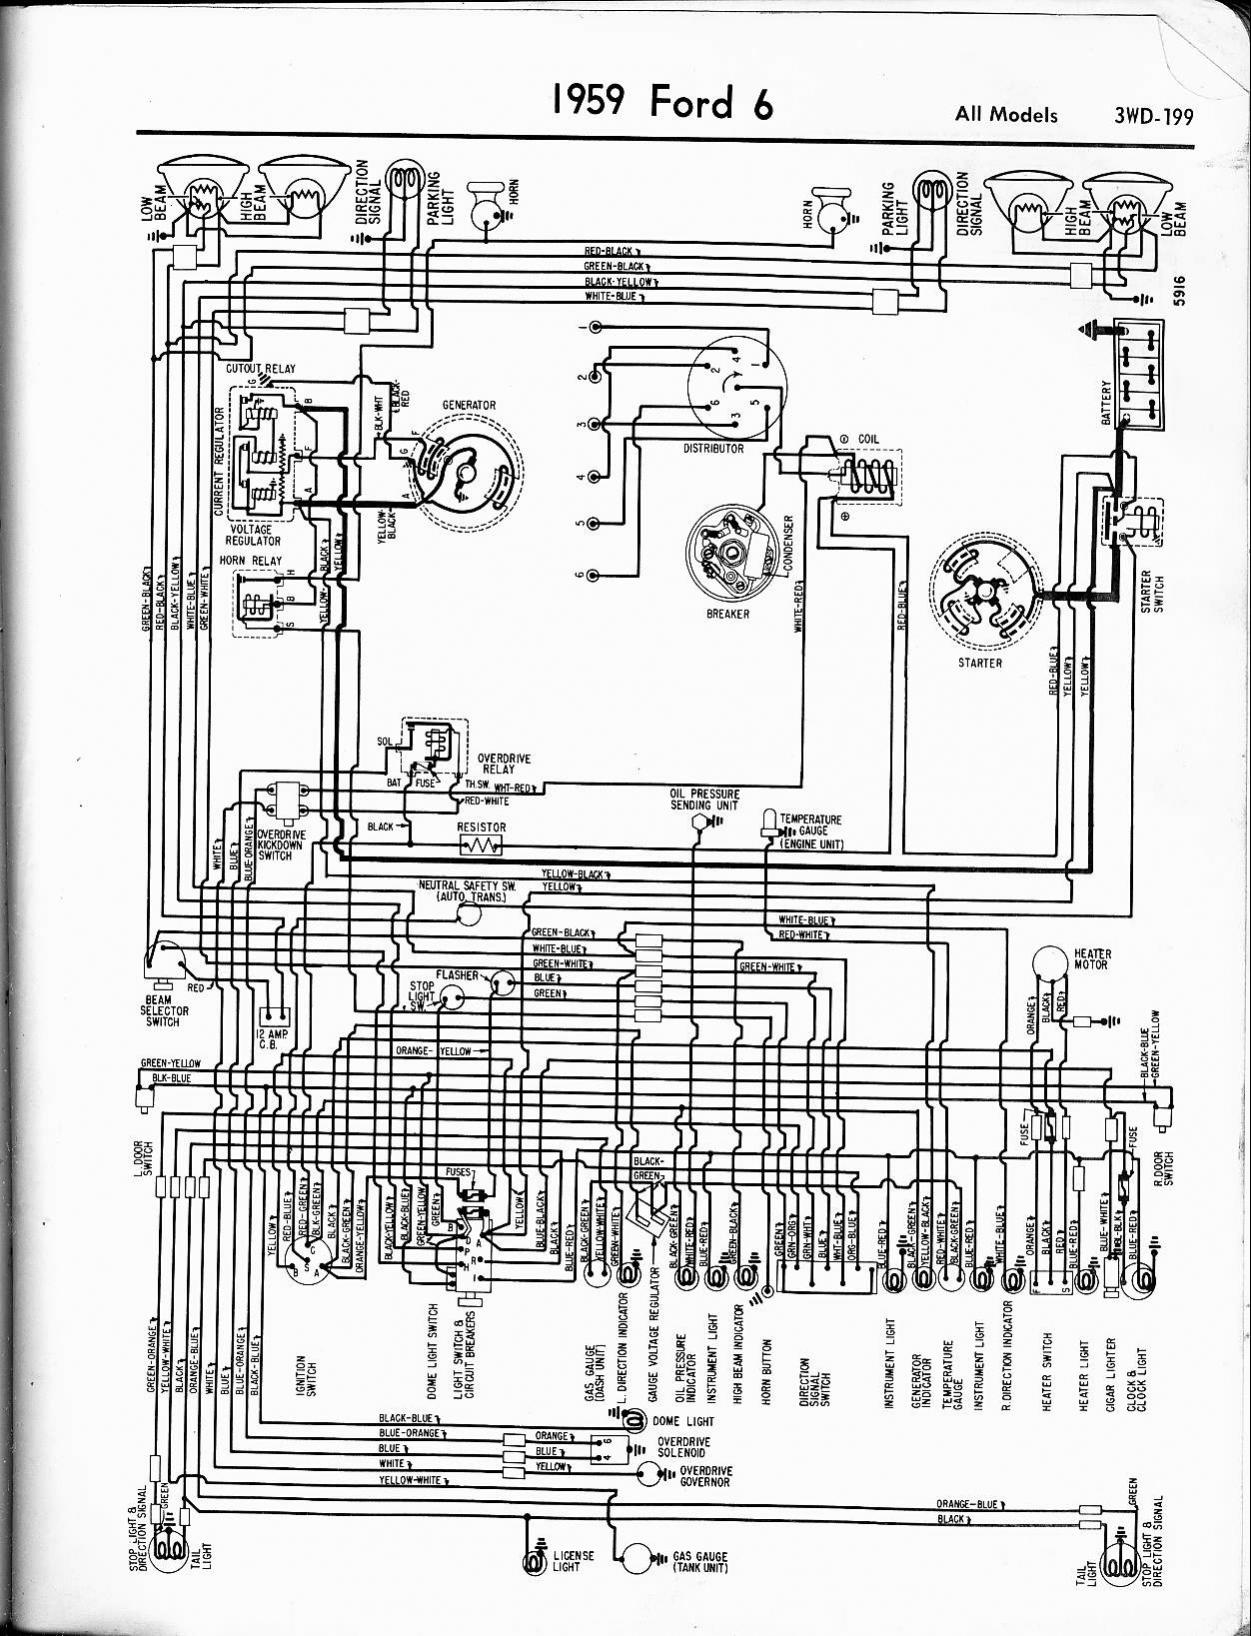 1960 ford thunderbird light switch diagram electrical wiring diagrams 1964 thunderbird  wiring schematics astounding 1956 ford